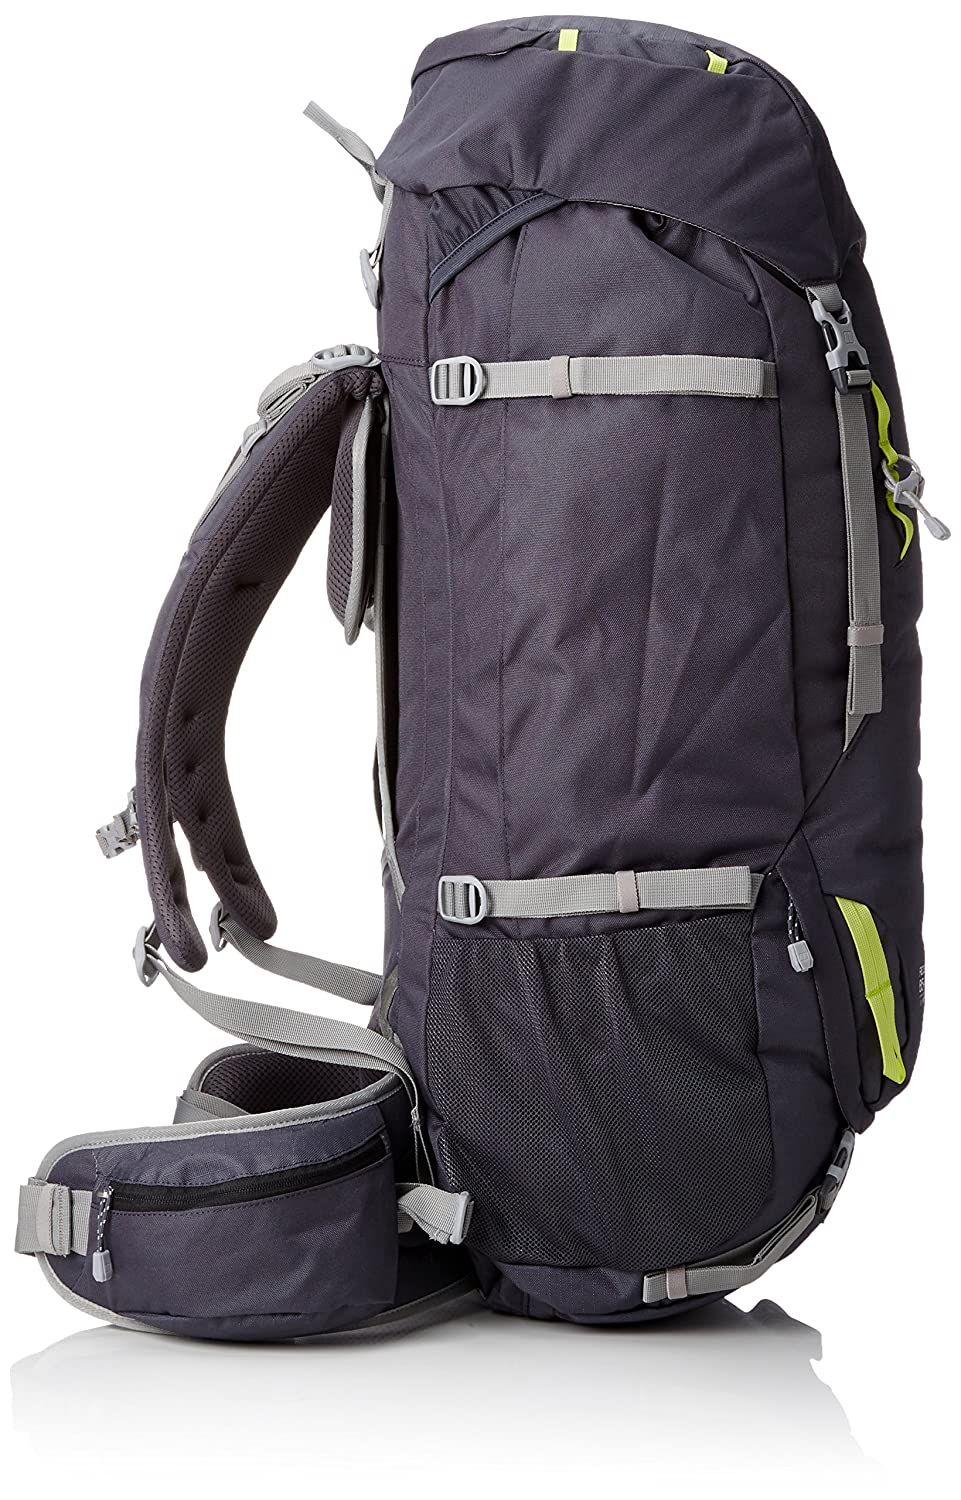 Berghaus Ridgeway 65+10L Outdoor Backpacks Carbon//Bright Lime One Size Pentland Brands Limited Berghaus-FOB GBLIV 4-21583Z50